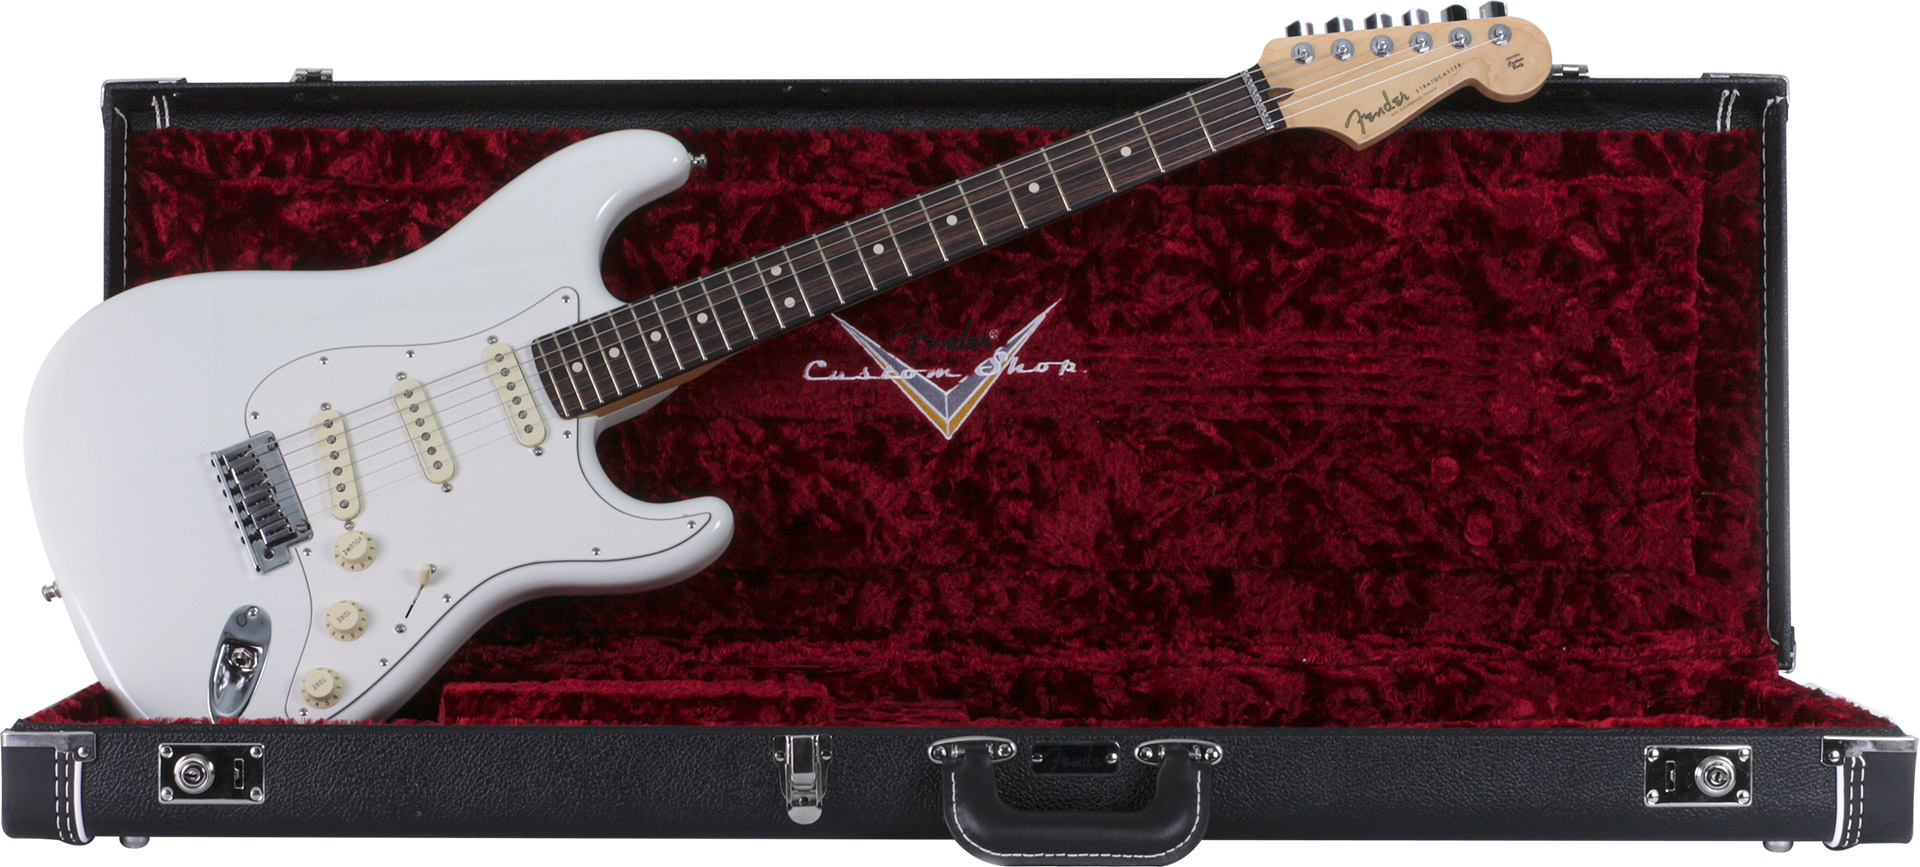 GUITARRA FENDER SIG SERIES JEFF BECK CUSTOM SHOP STRATOCASTER 015-0083-805 OLYMPIC WHITE